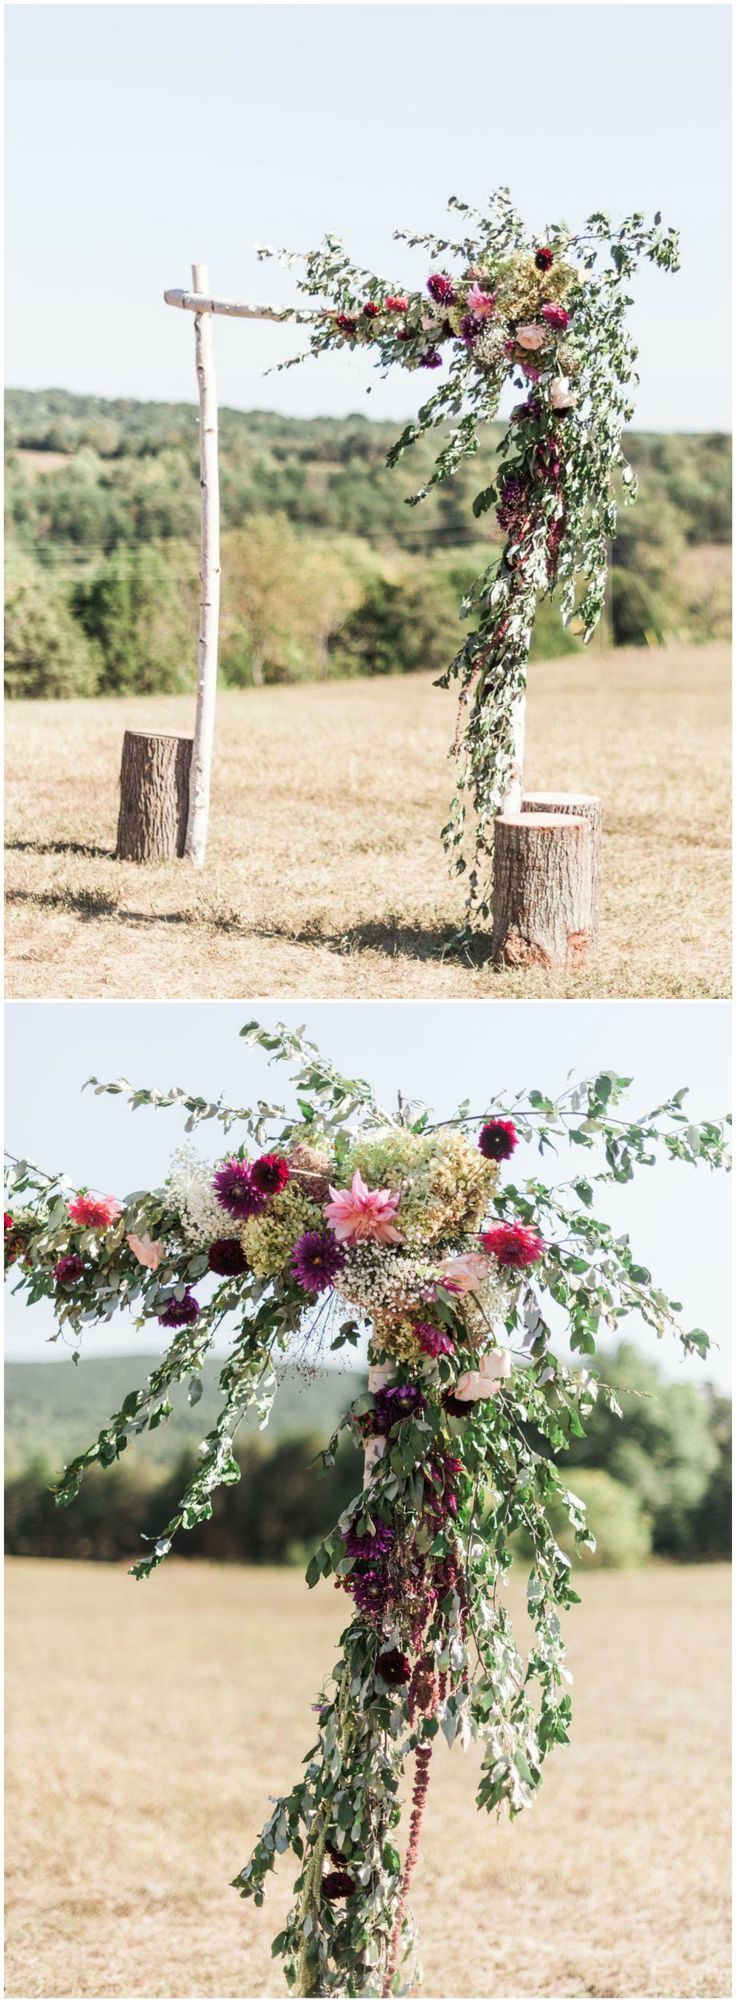 Wedding decorations natural  The Smarter Way to Wed  Natural Weddings  Pinterest  Florals